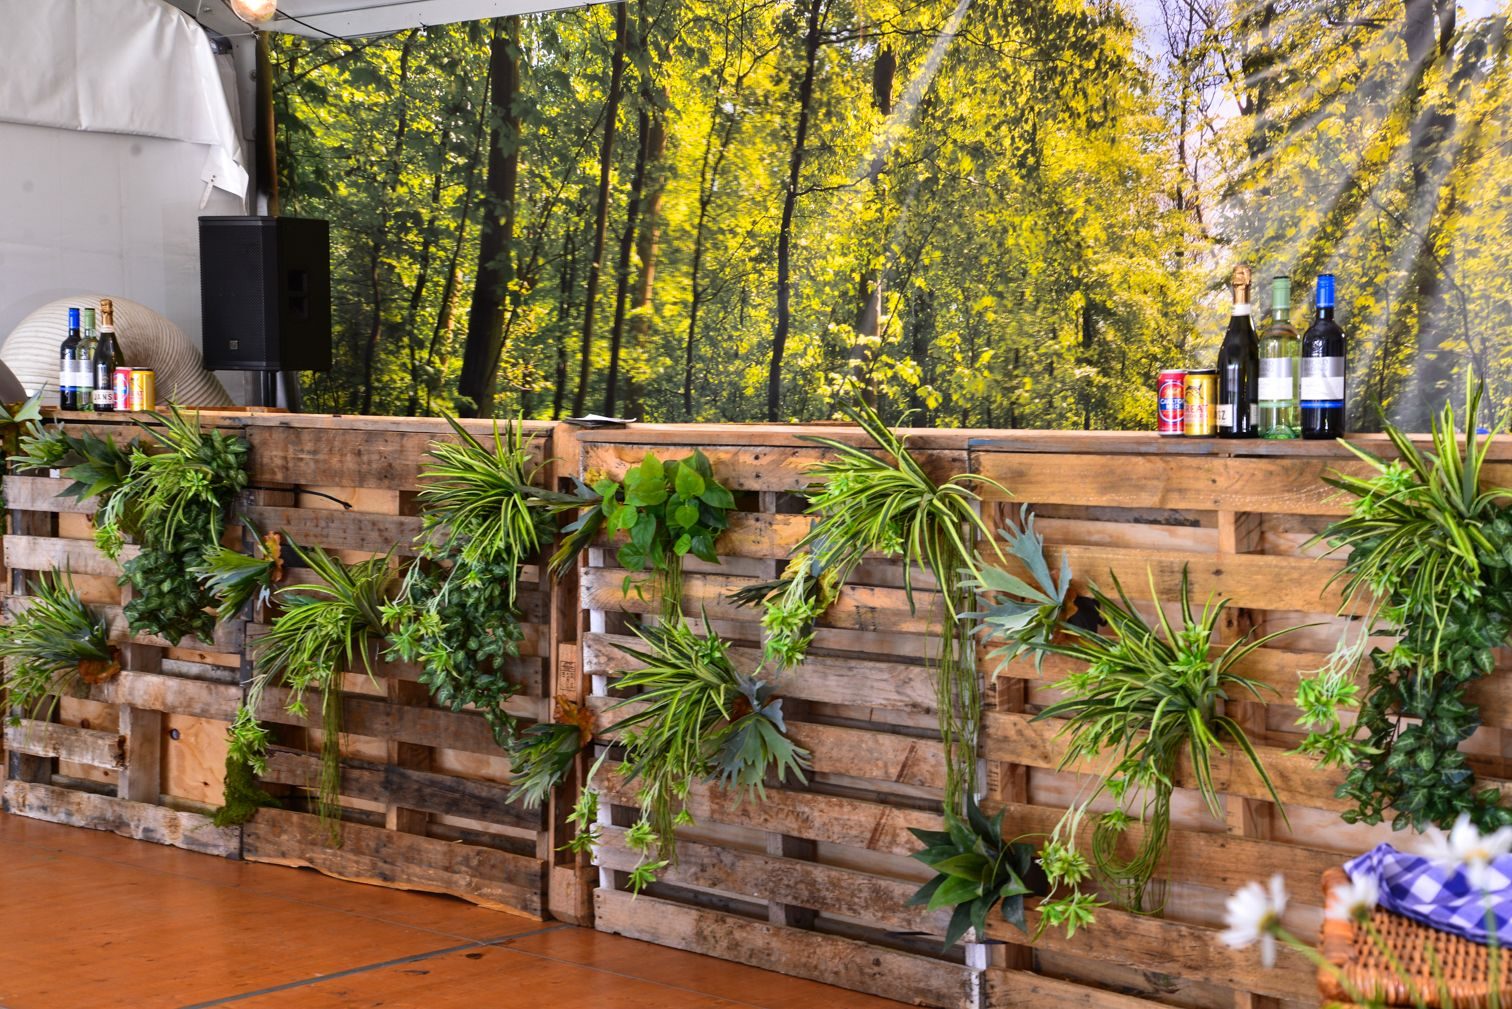 Rustic Pallet Bar. For hire details contact: www.youreventsolution.com.au/contact.php #YESevents #YourEventSolution